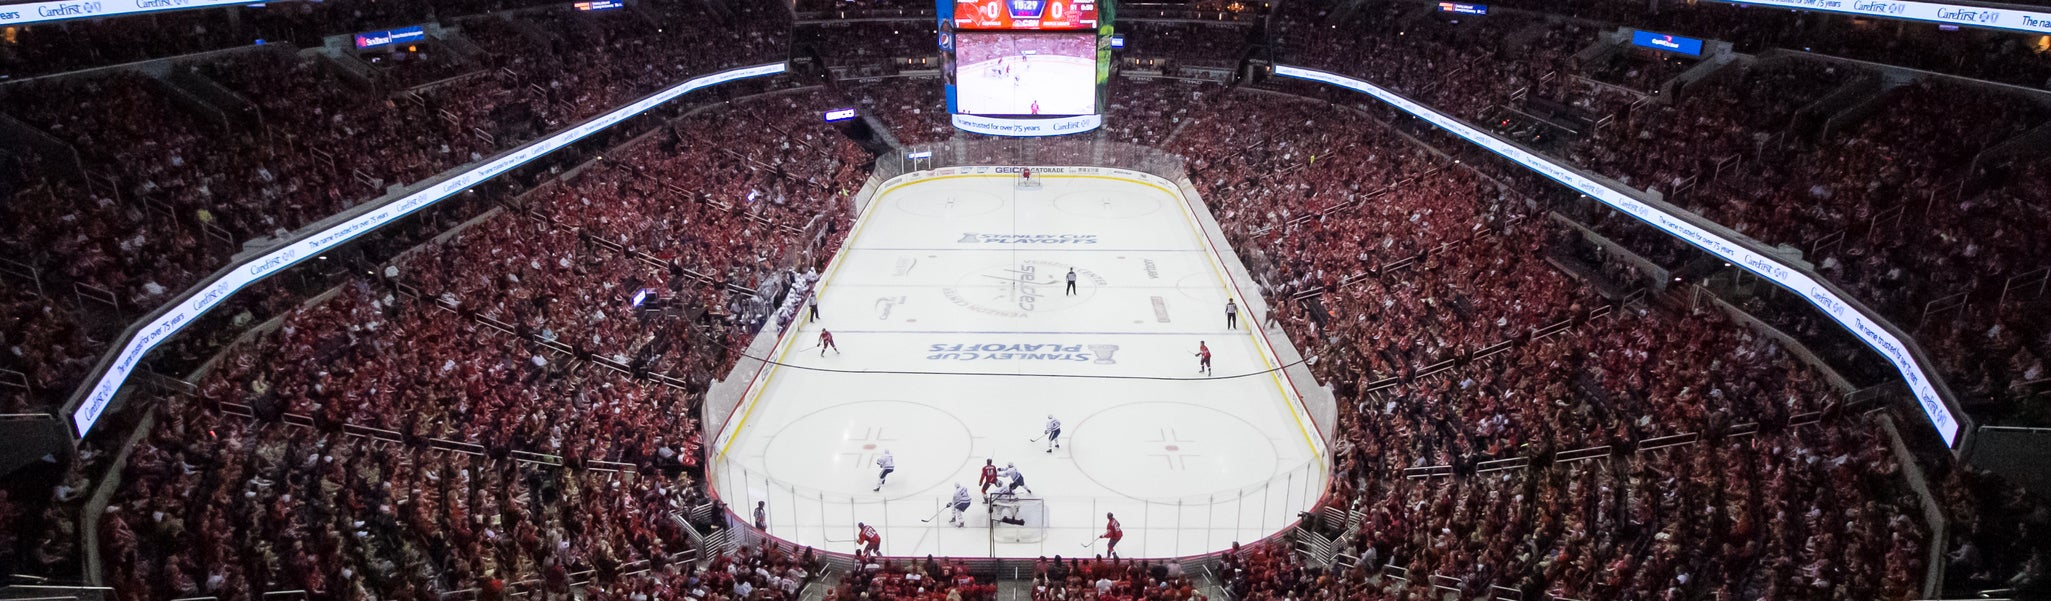 Seat view from Mezzanine End 409 at Capital One Arena